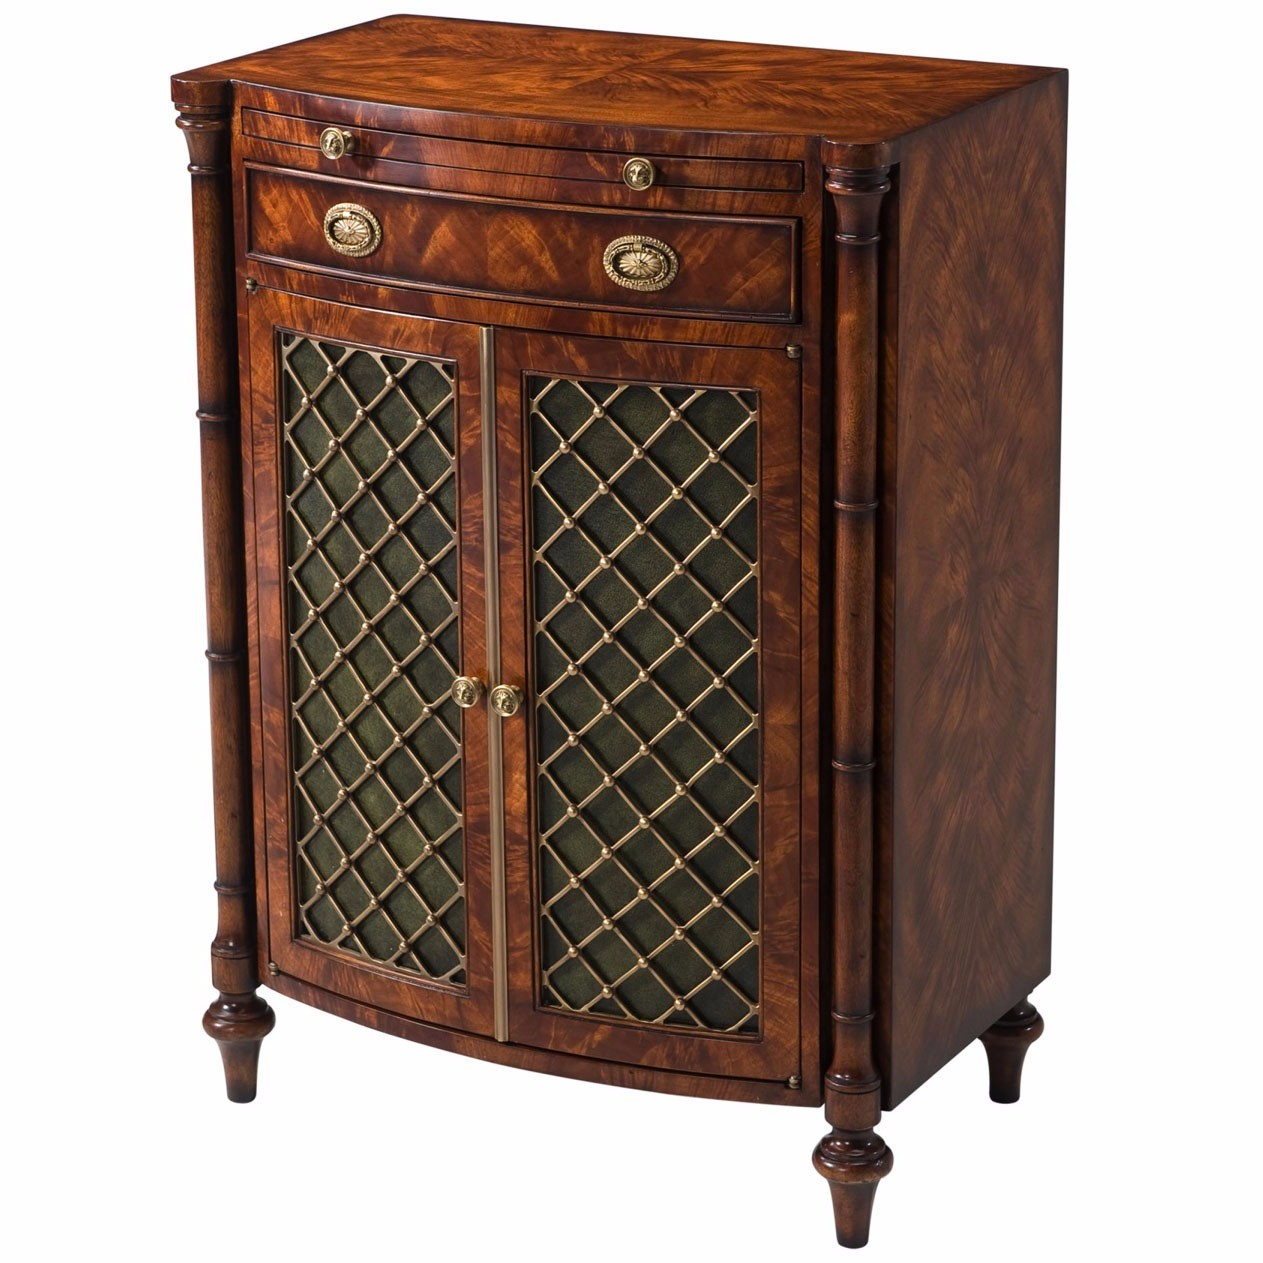 A mahogany bowfront Chiffonier or side cabinet